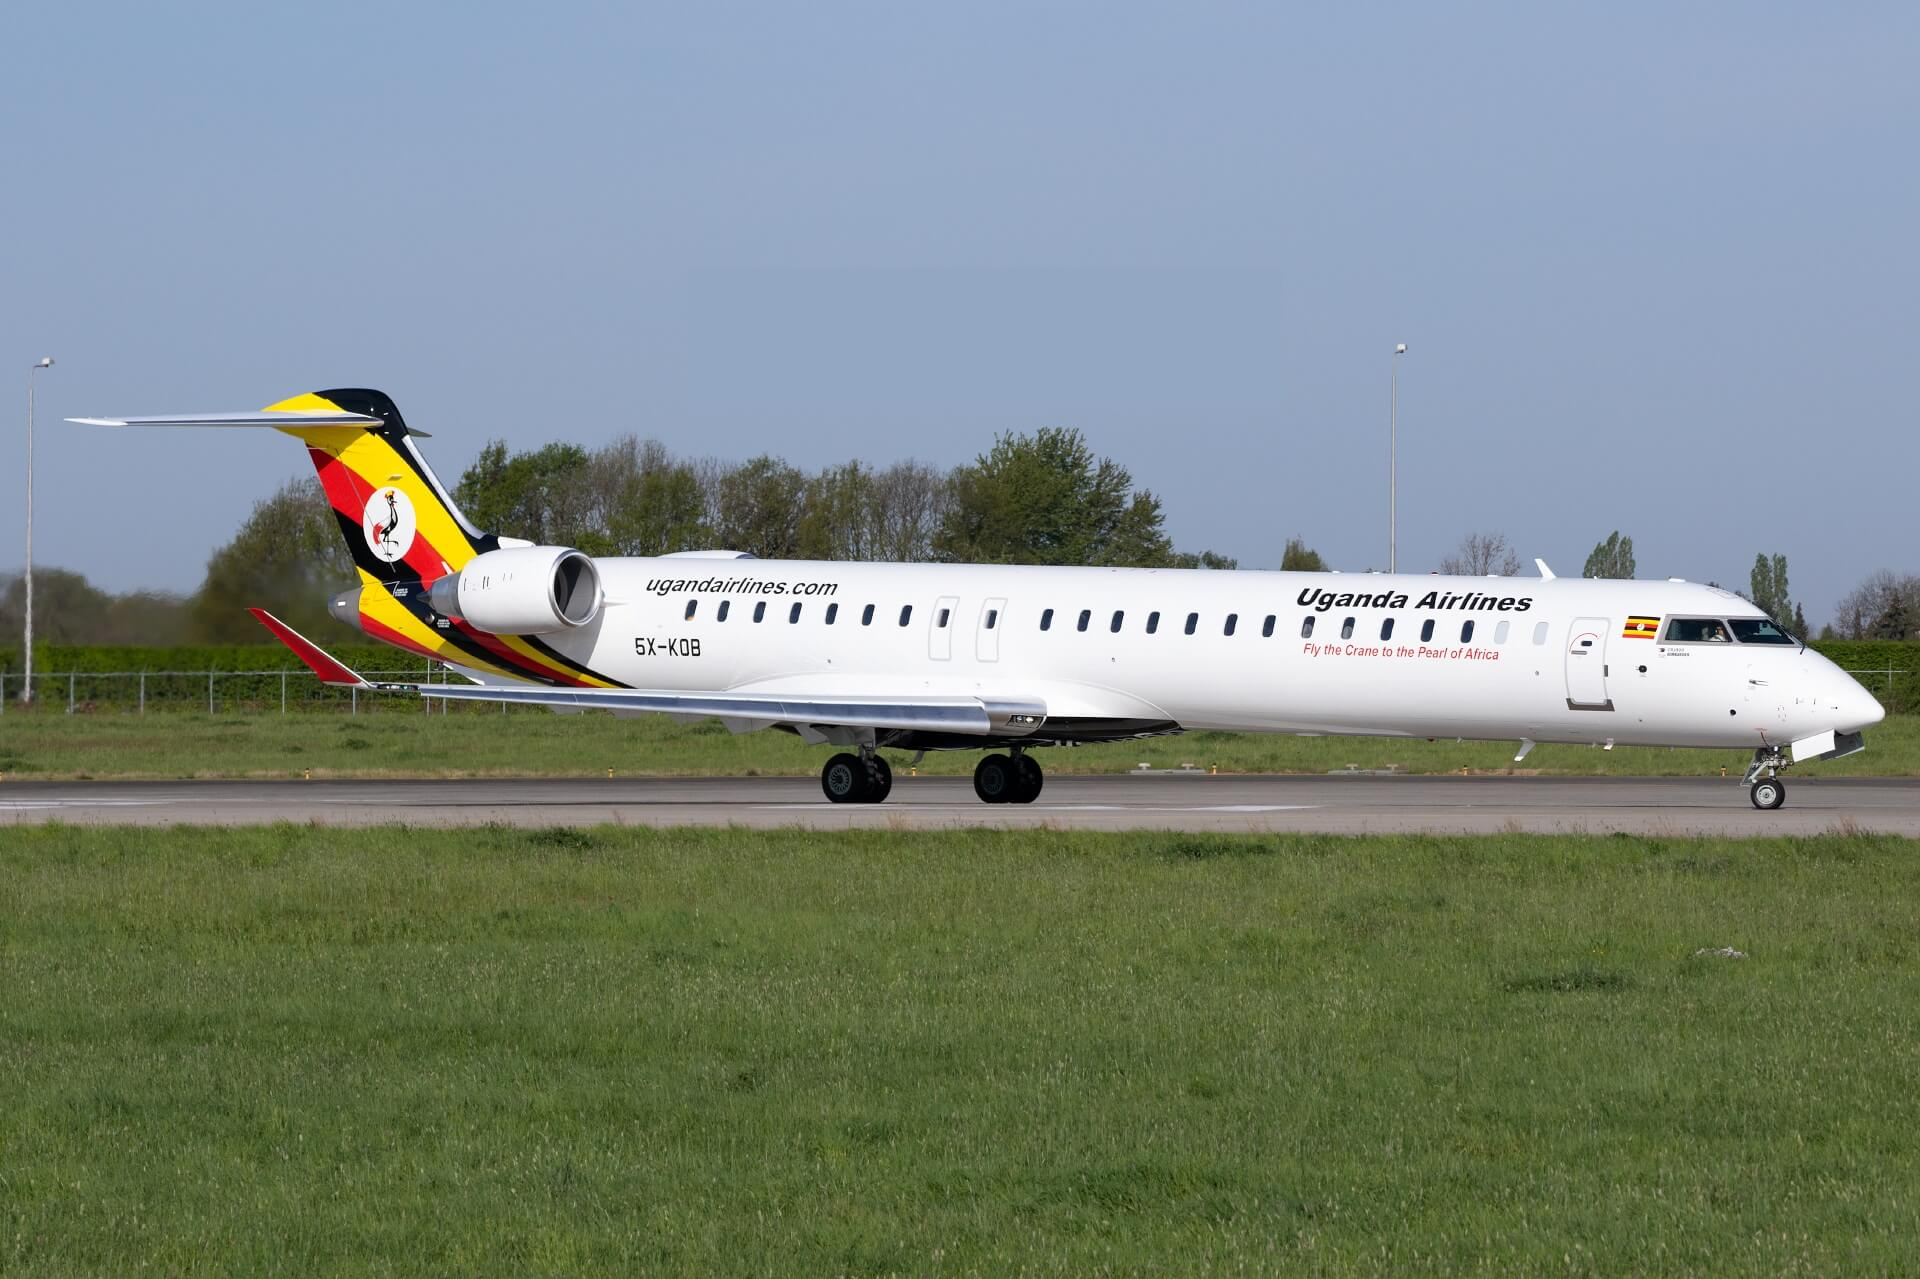 Uganda Airlines flights to Mombasa drawcard for gorilla tourism and regional trade